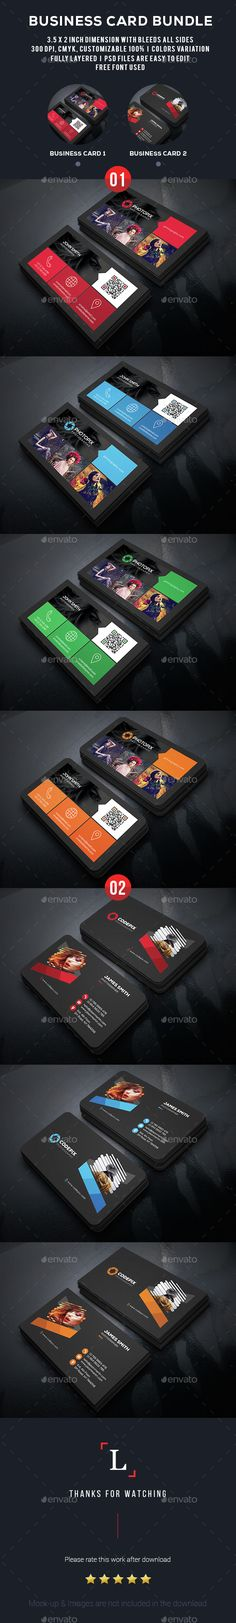 Photography Business Card Bundle — Photoshop PSD #official #standard • Available here → https://graphicriver.net/item/photography-business-card-bundle/15352213?ref=pxcr